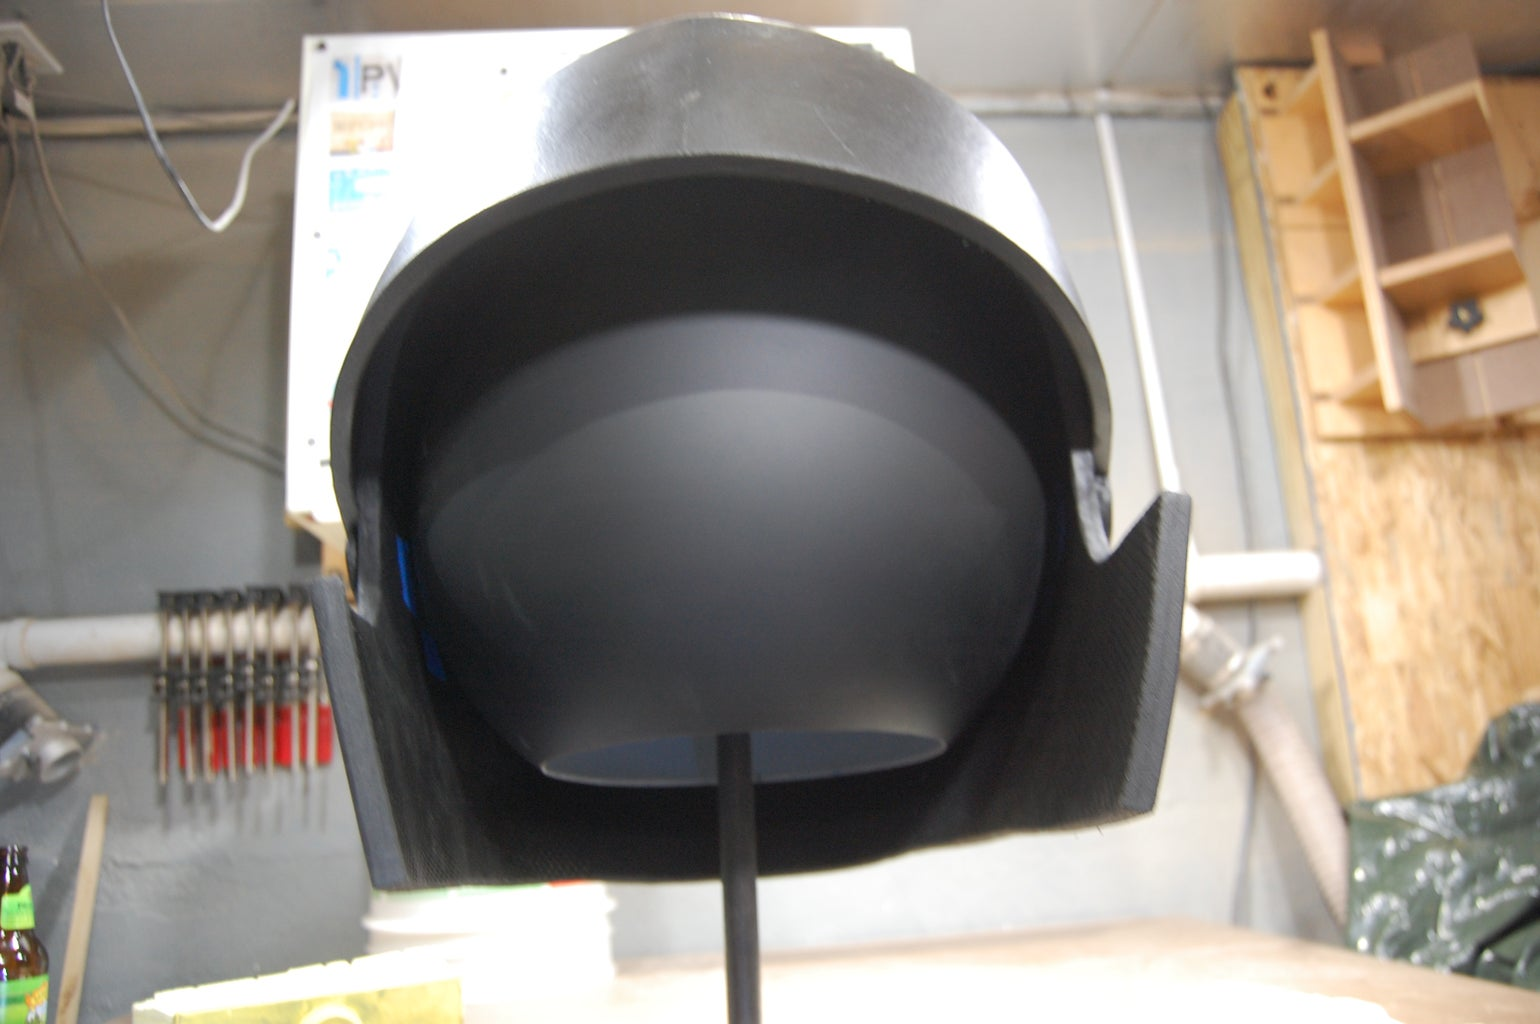 Assembly of the Head/Helmet